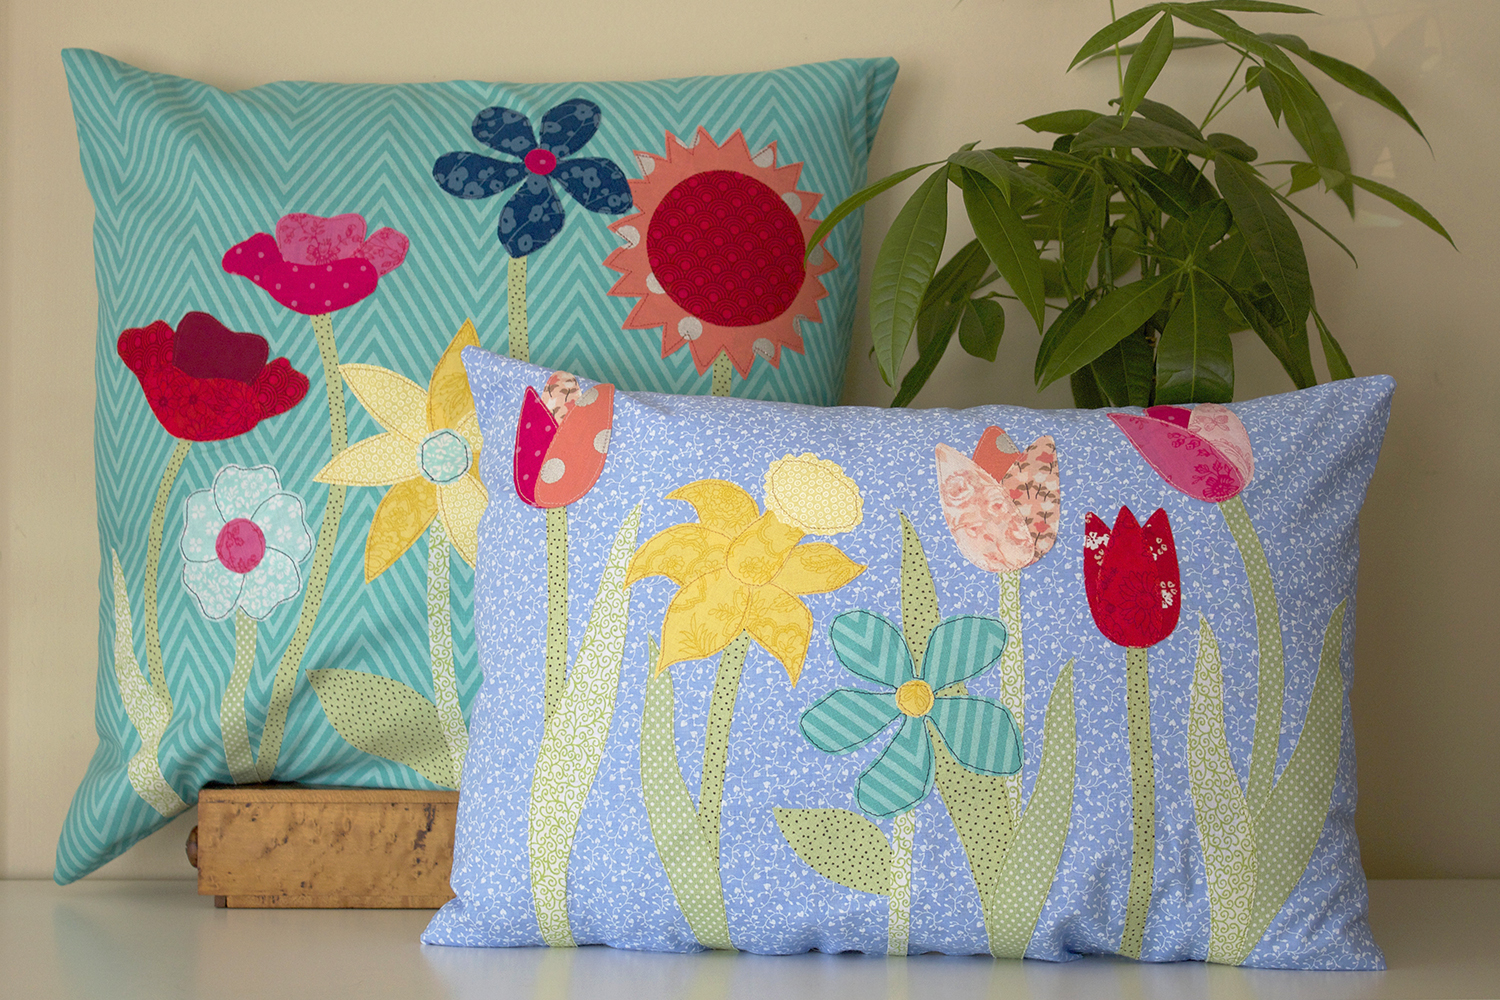 Scrappy Chic: Spring Flower Applique Pillow